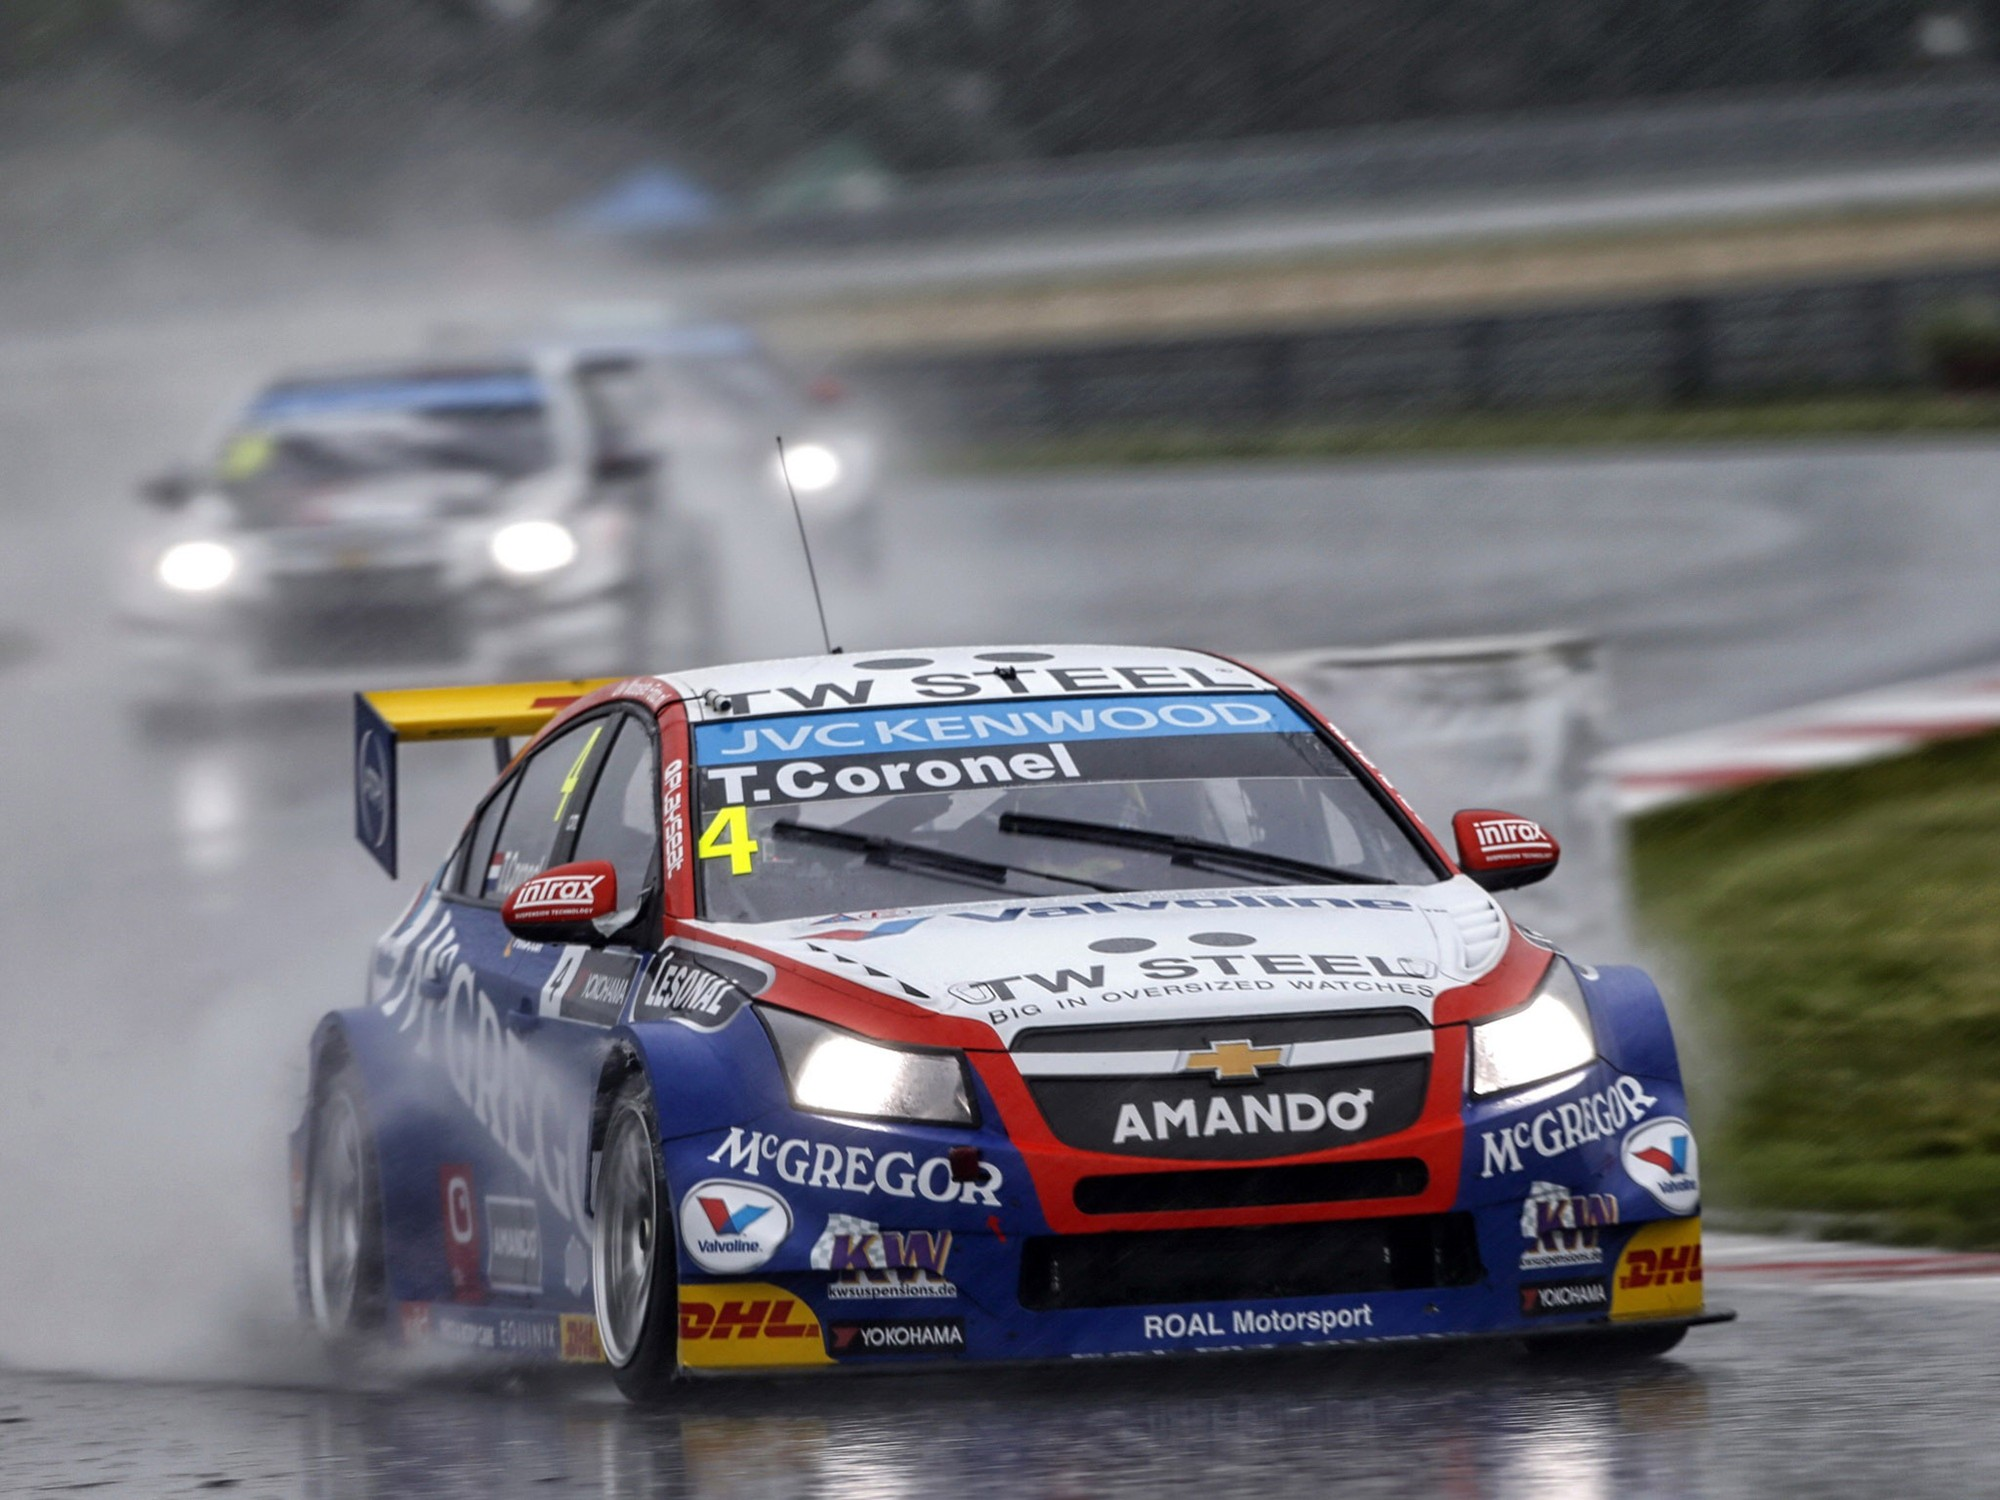 http://www.wallpaperup.com/352310/chevrolet_cruze_wtcc_2014_race_car_racing_4000x3000.html